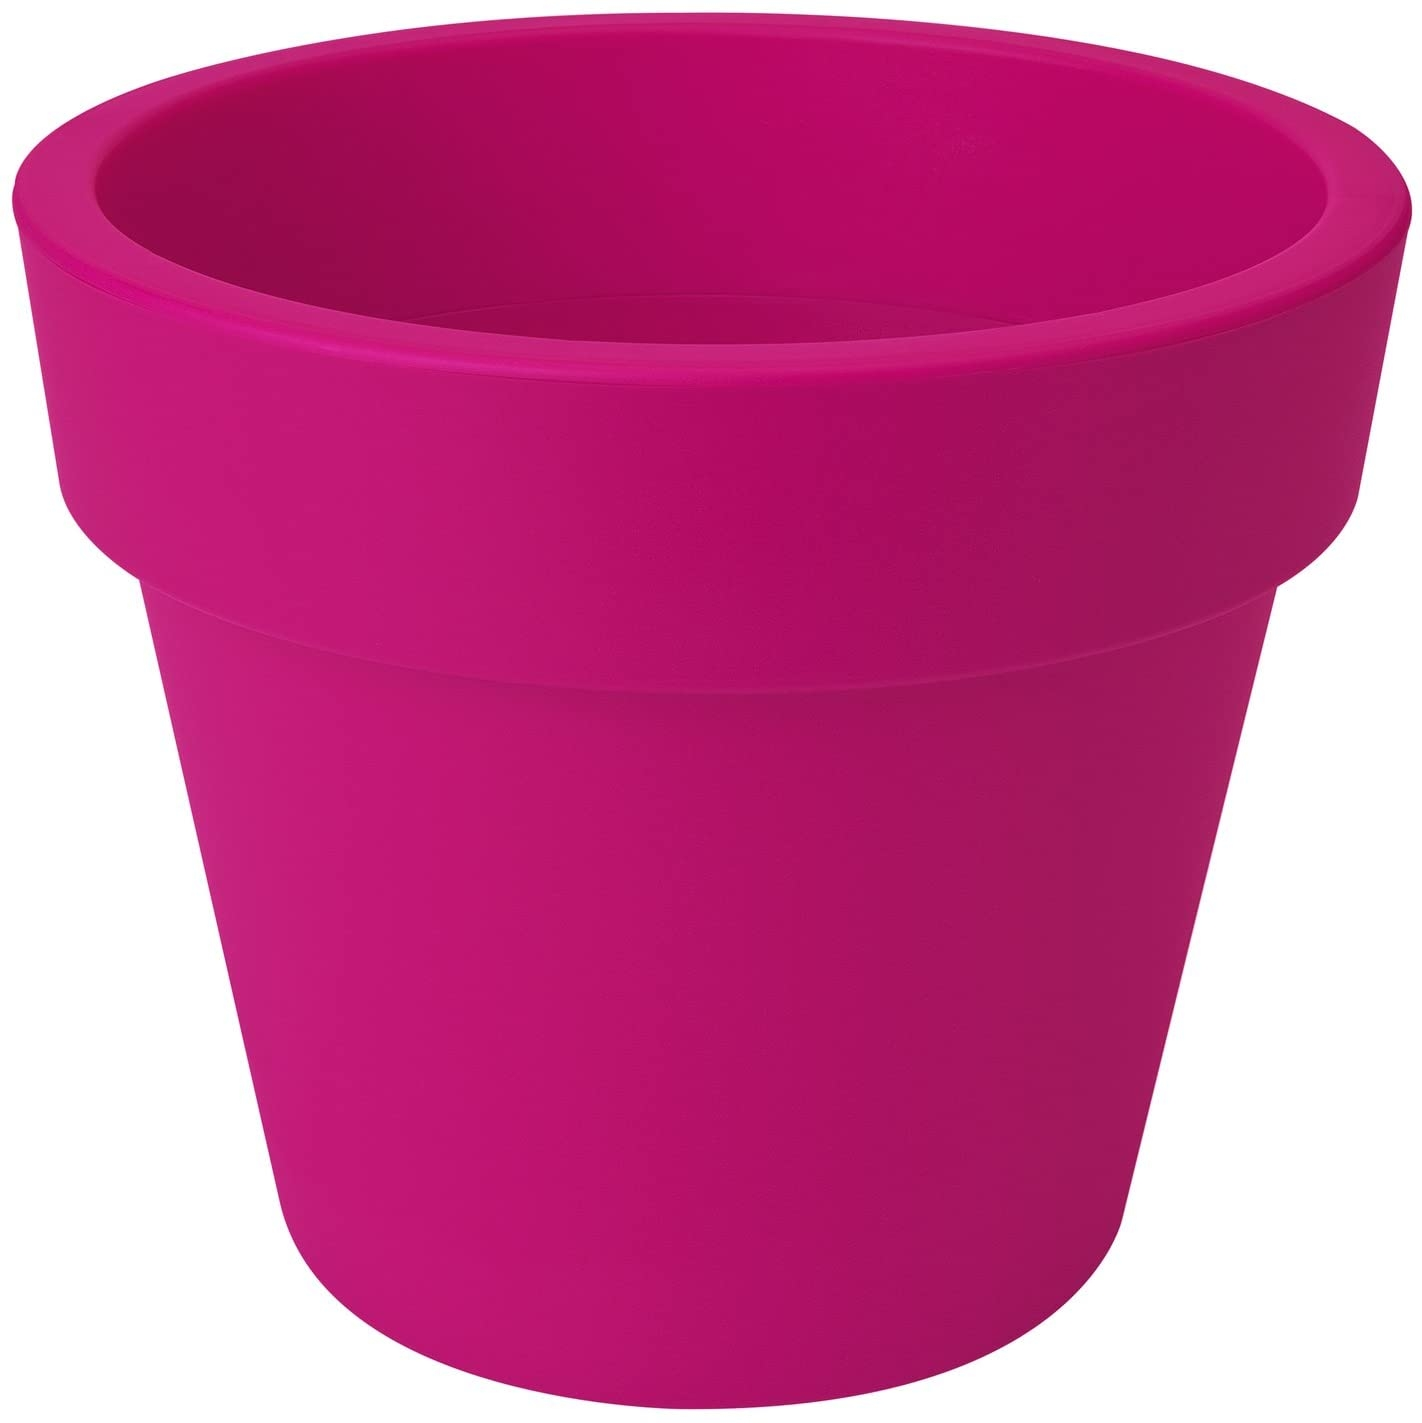 Elho Green Basics Top Planter 47 cm Sweet Raspberry